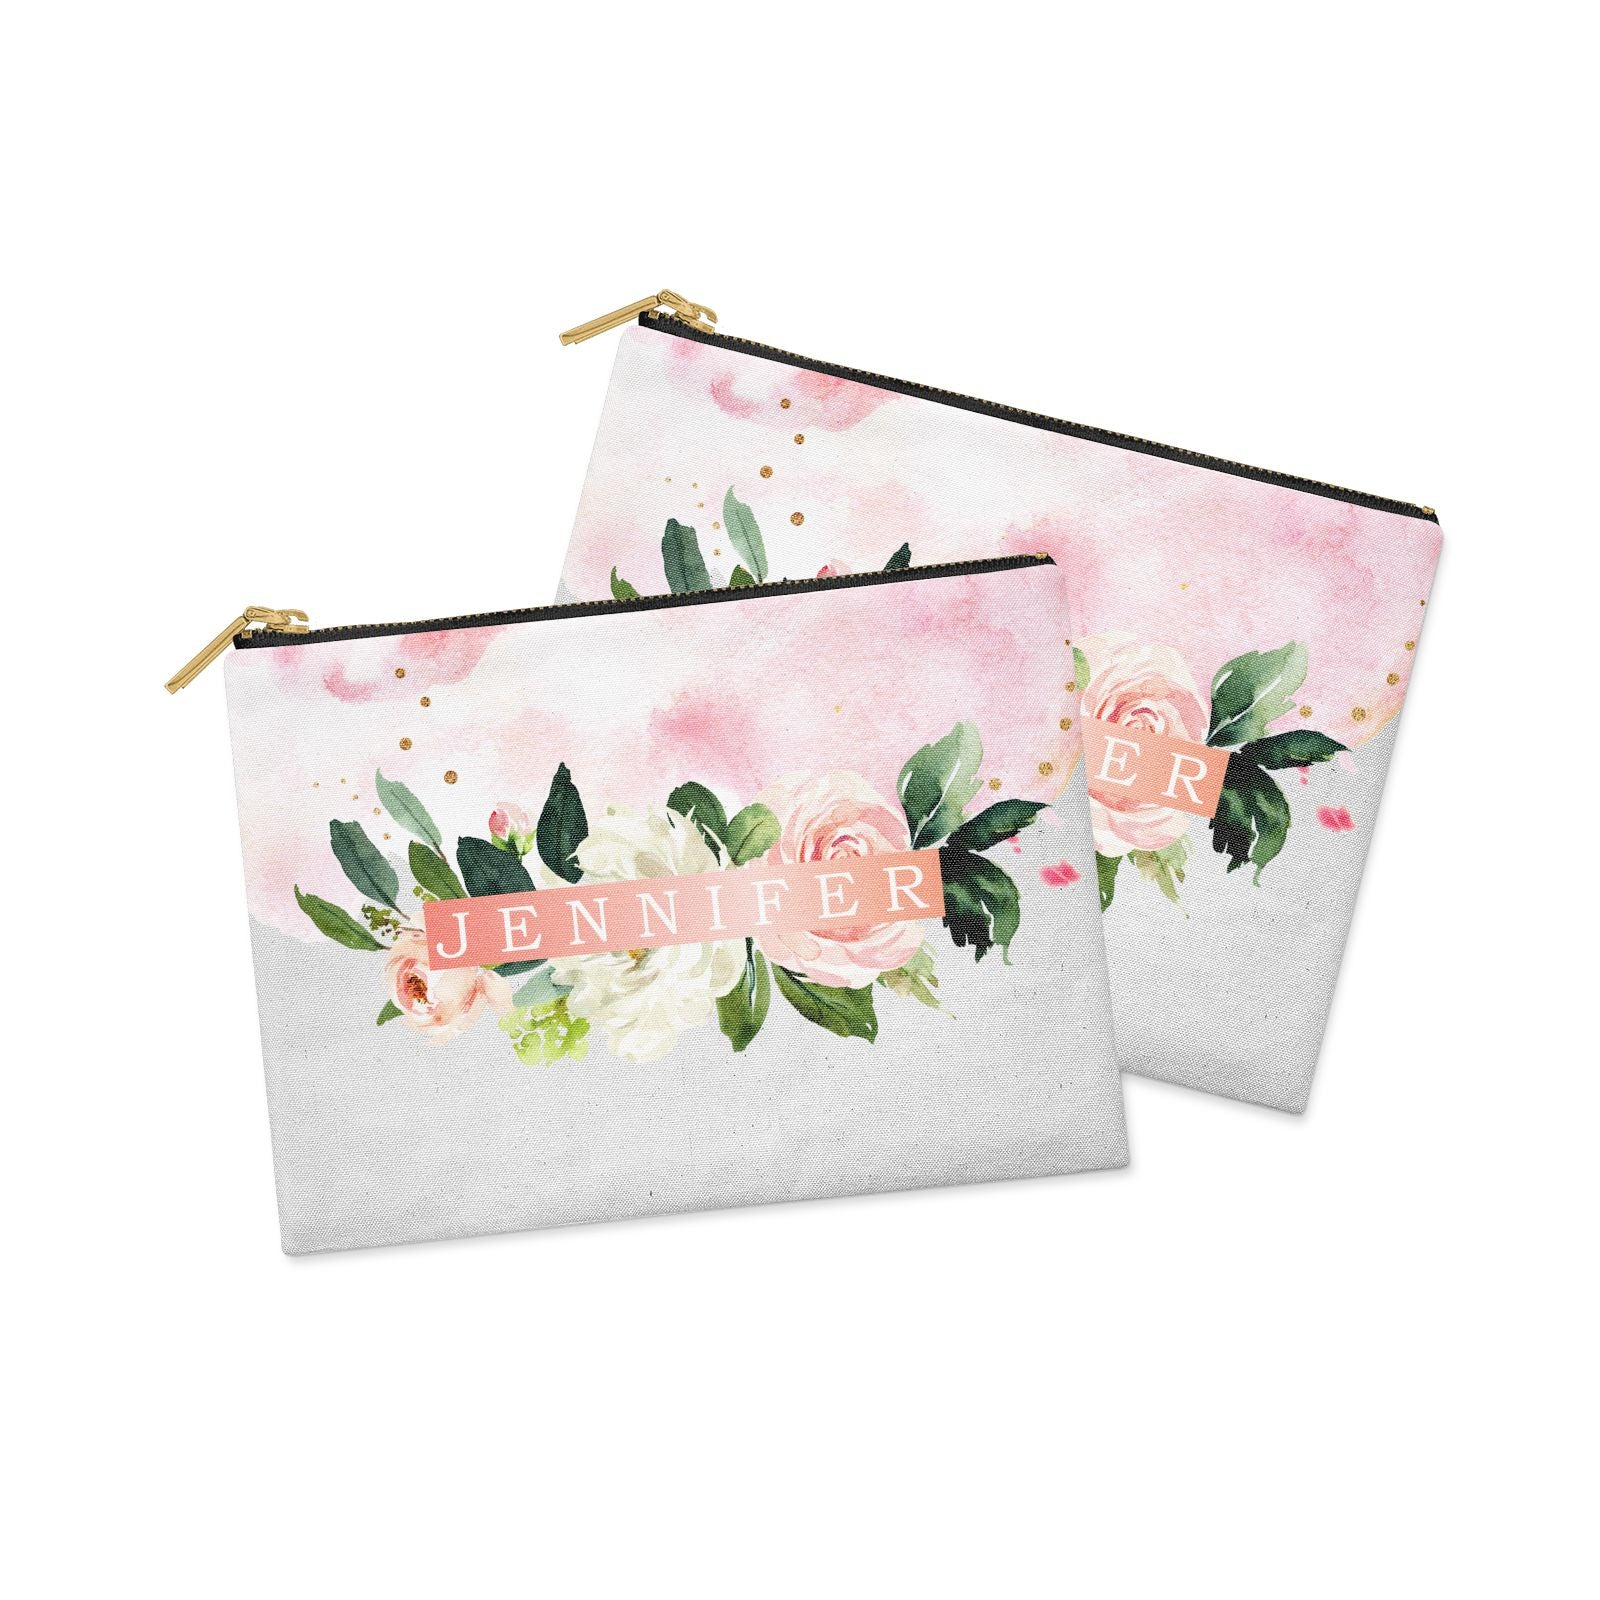 Blush Pink Personalised Name Floral Clutch Bag Zipper Pouch Alternative View